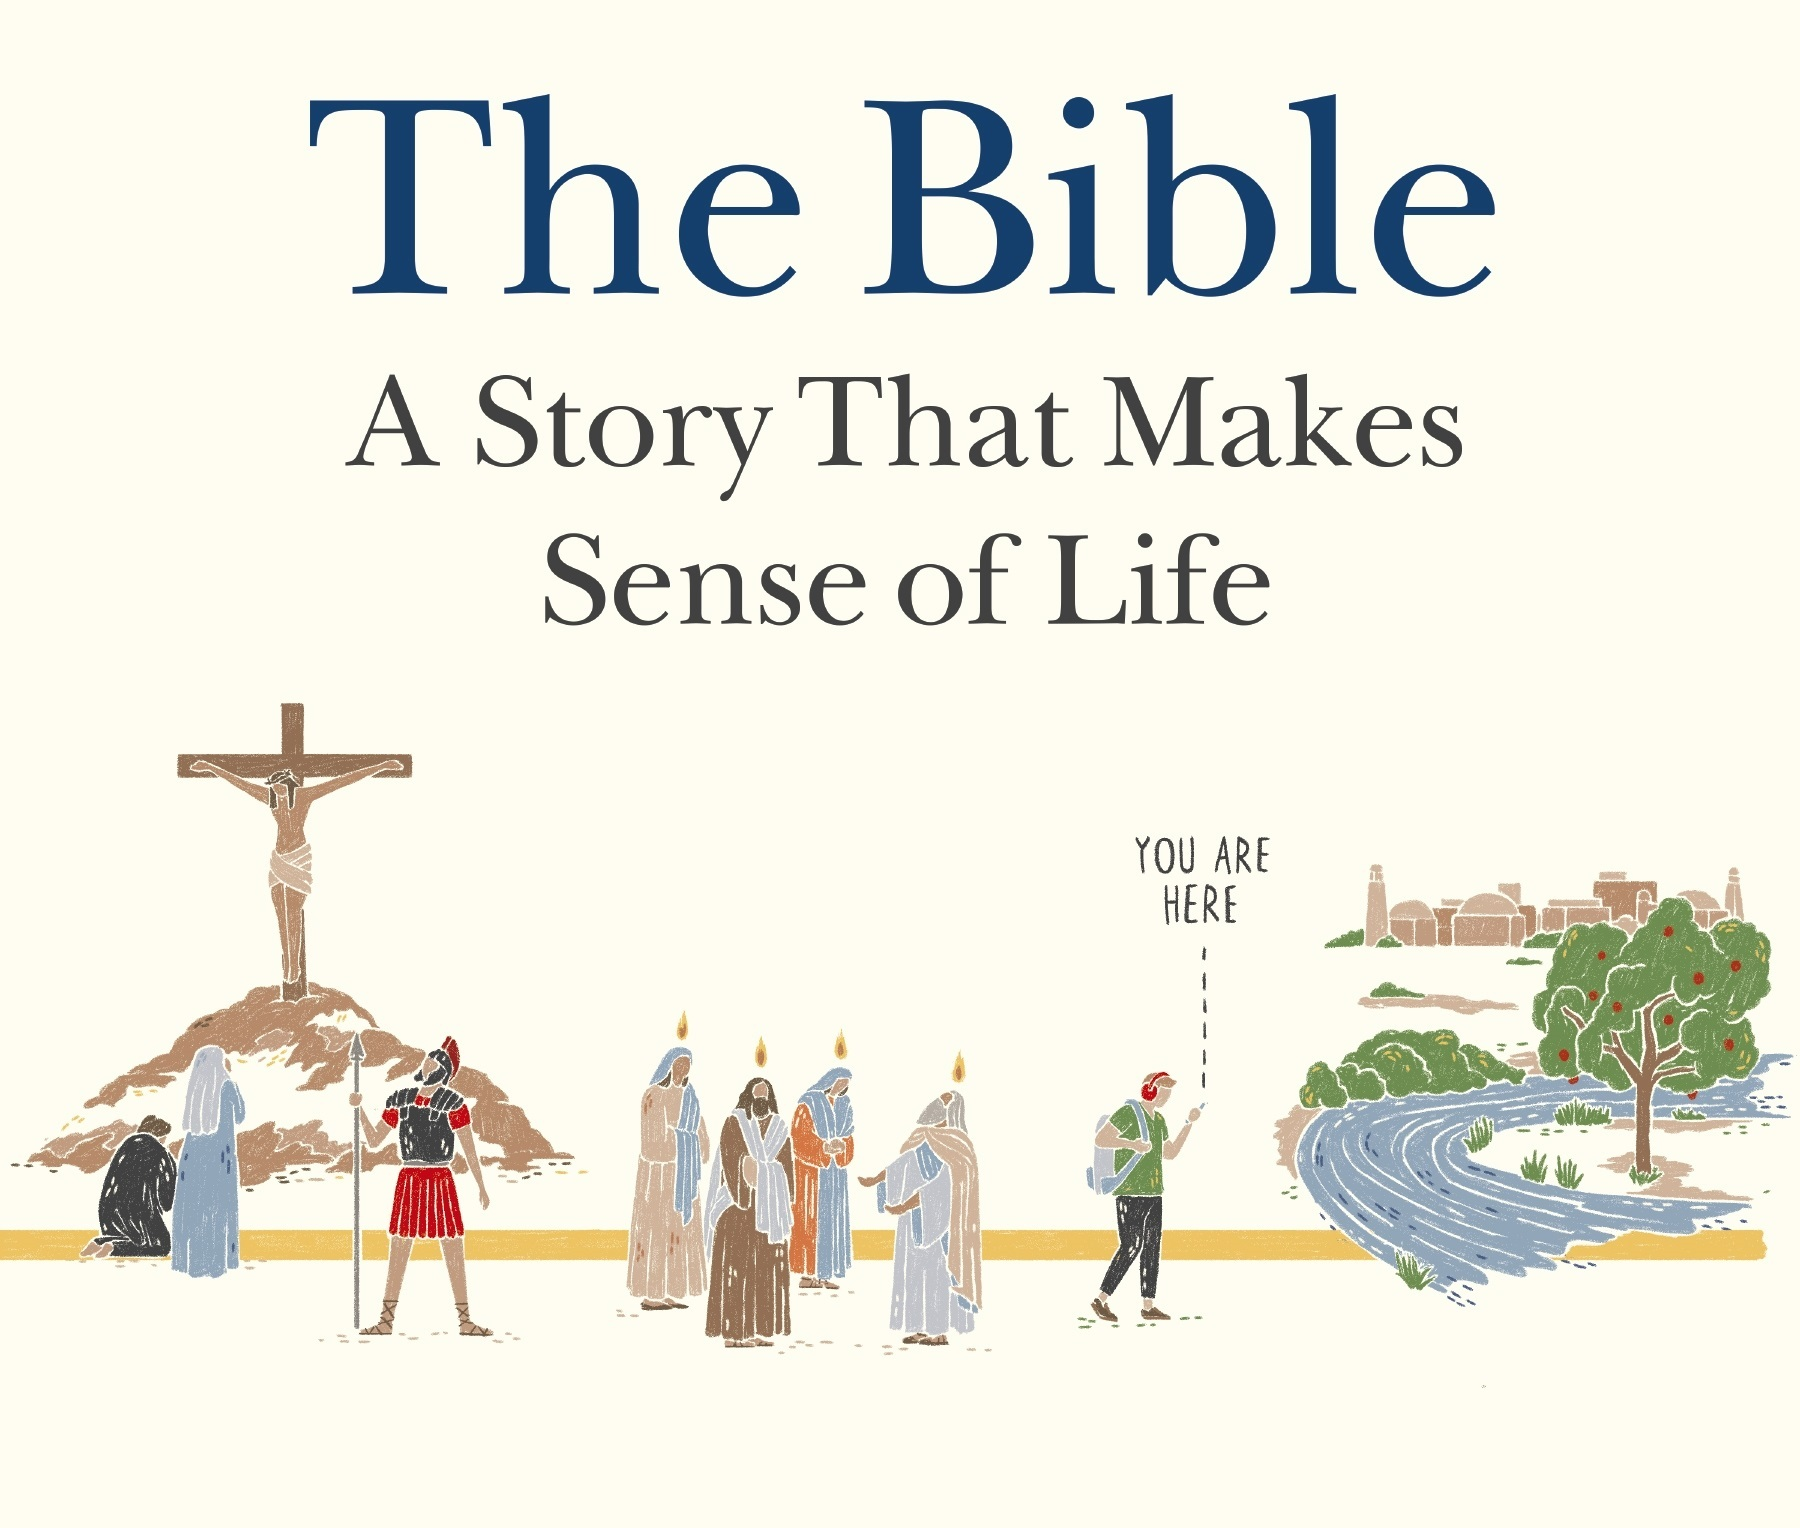 The Bible a story that makes sense of life cropped